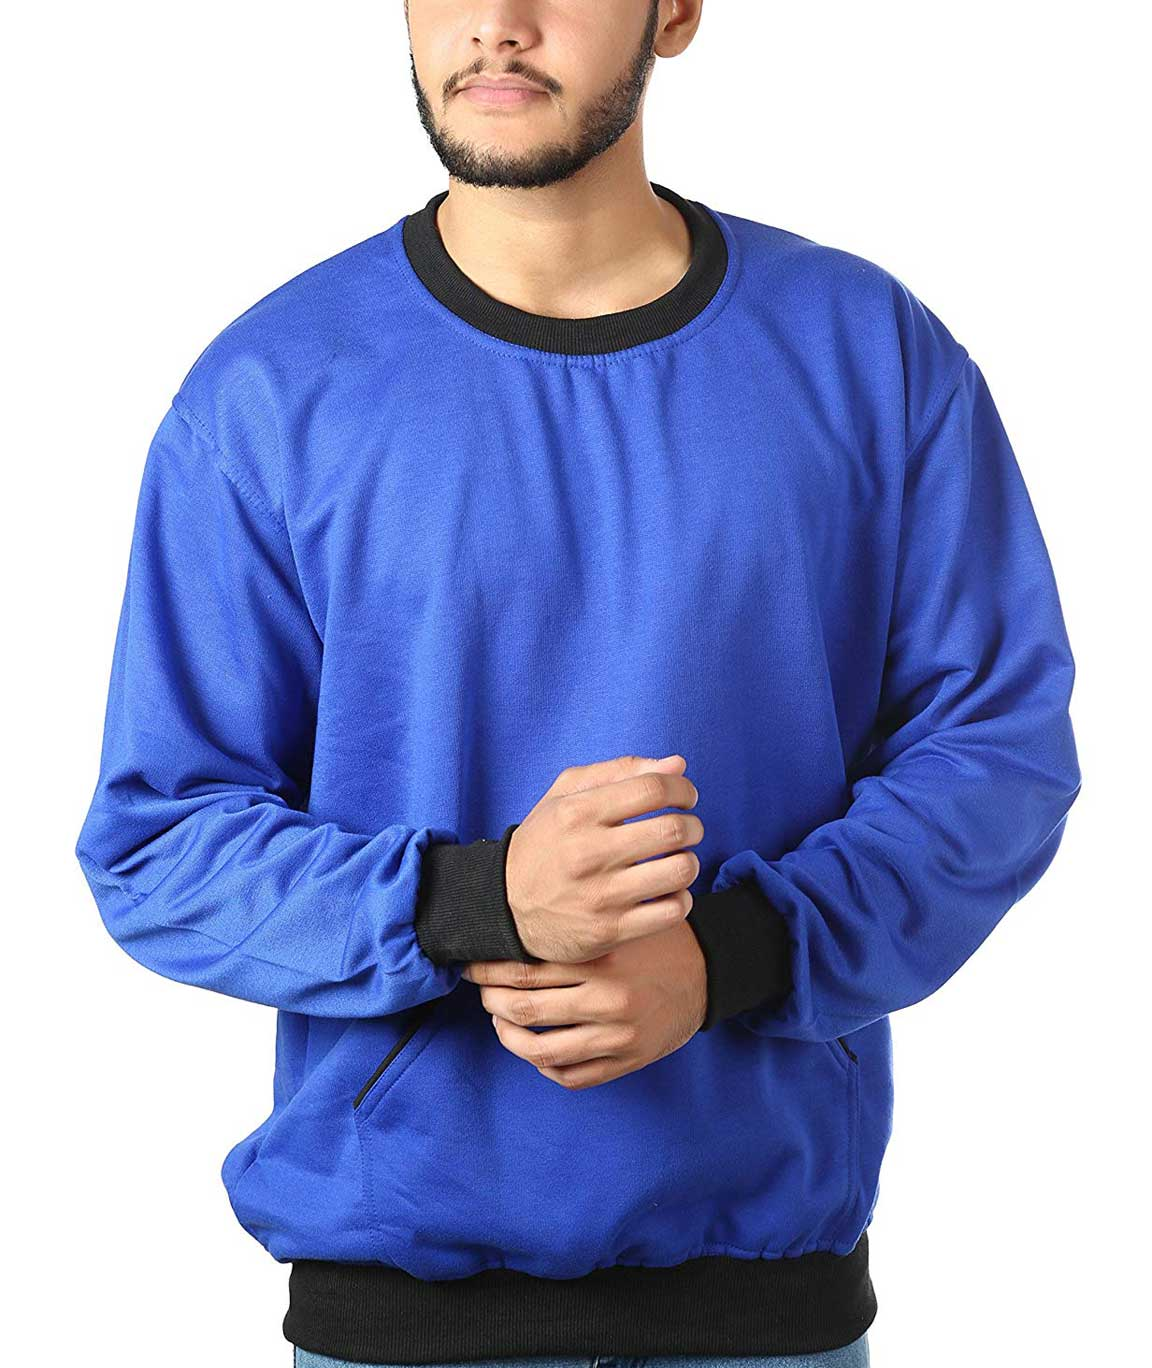 Vestiario Men Cotton Blended Sweatshirt